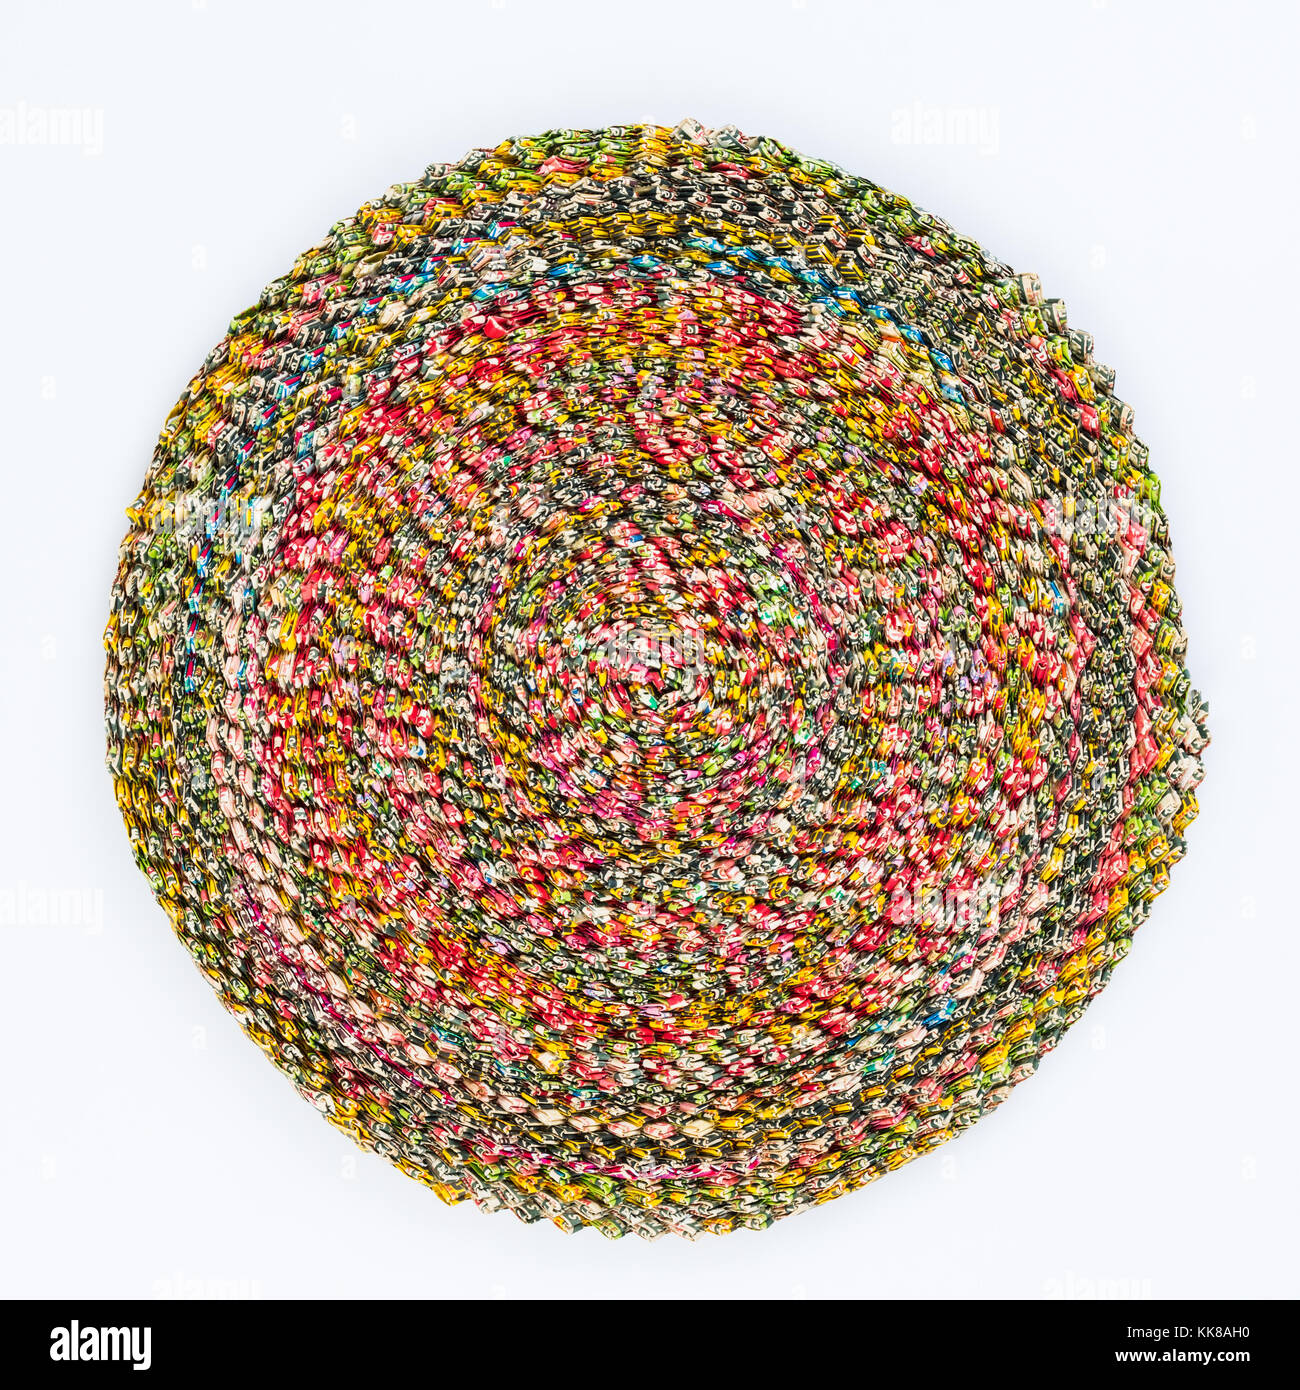 Round matt created with discarded gum wrappers - Stock Image